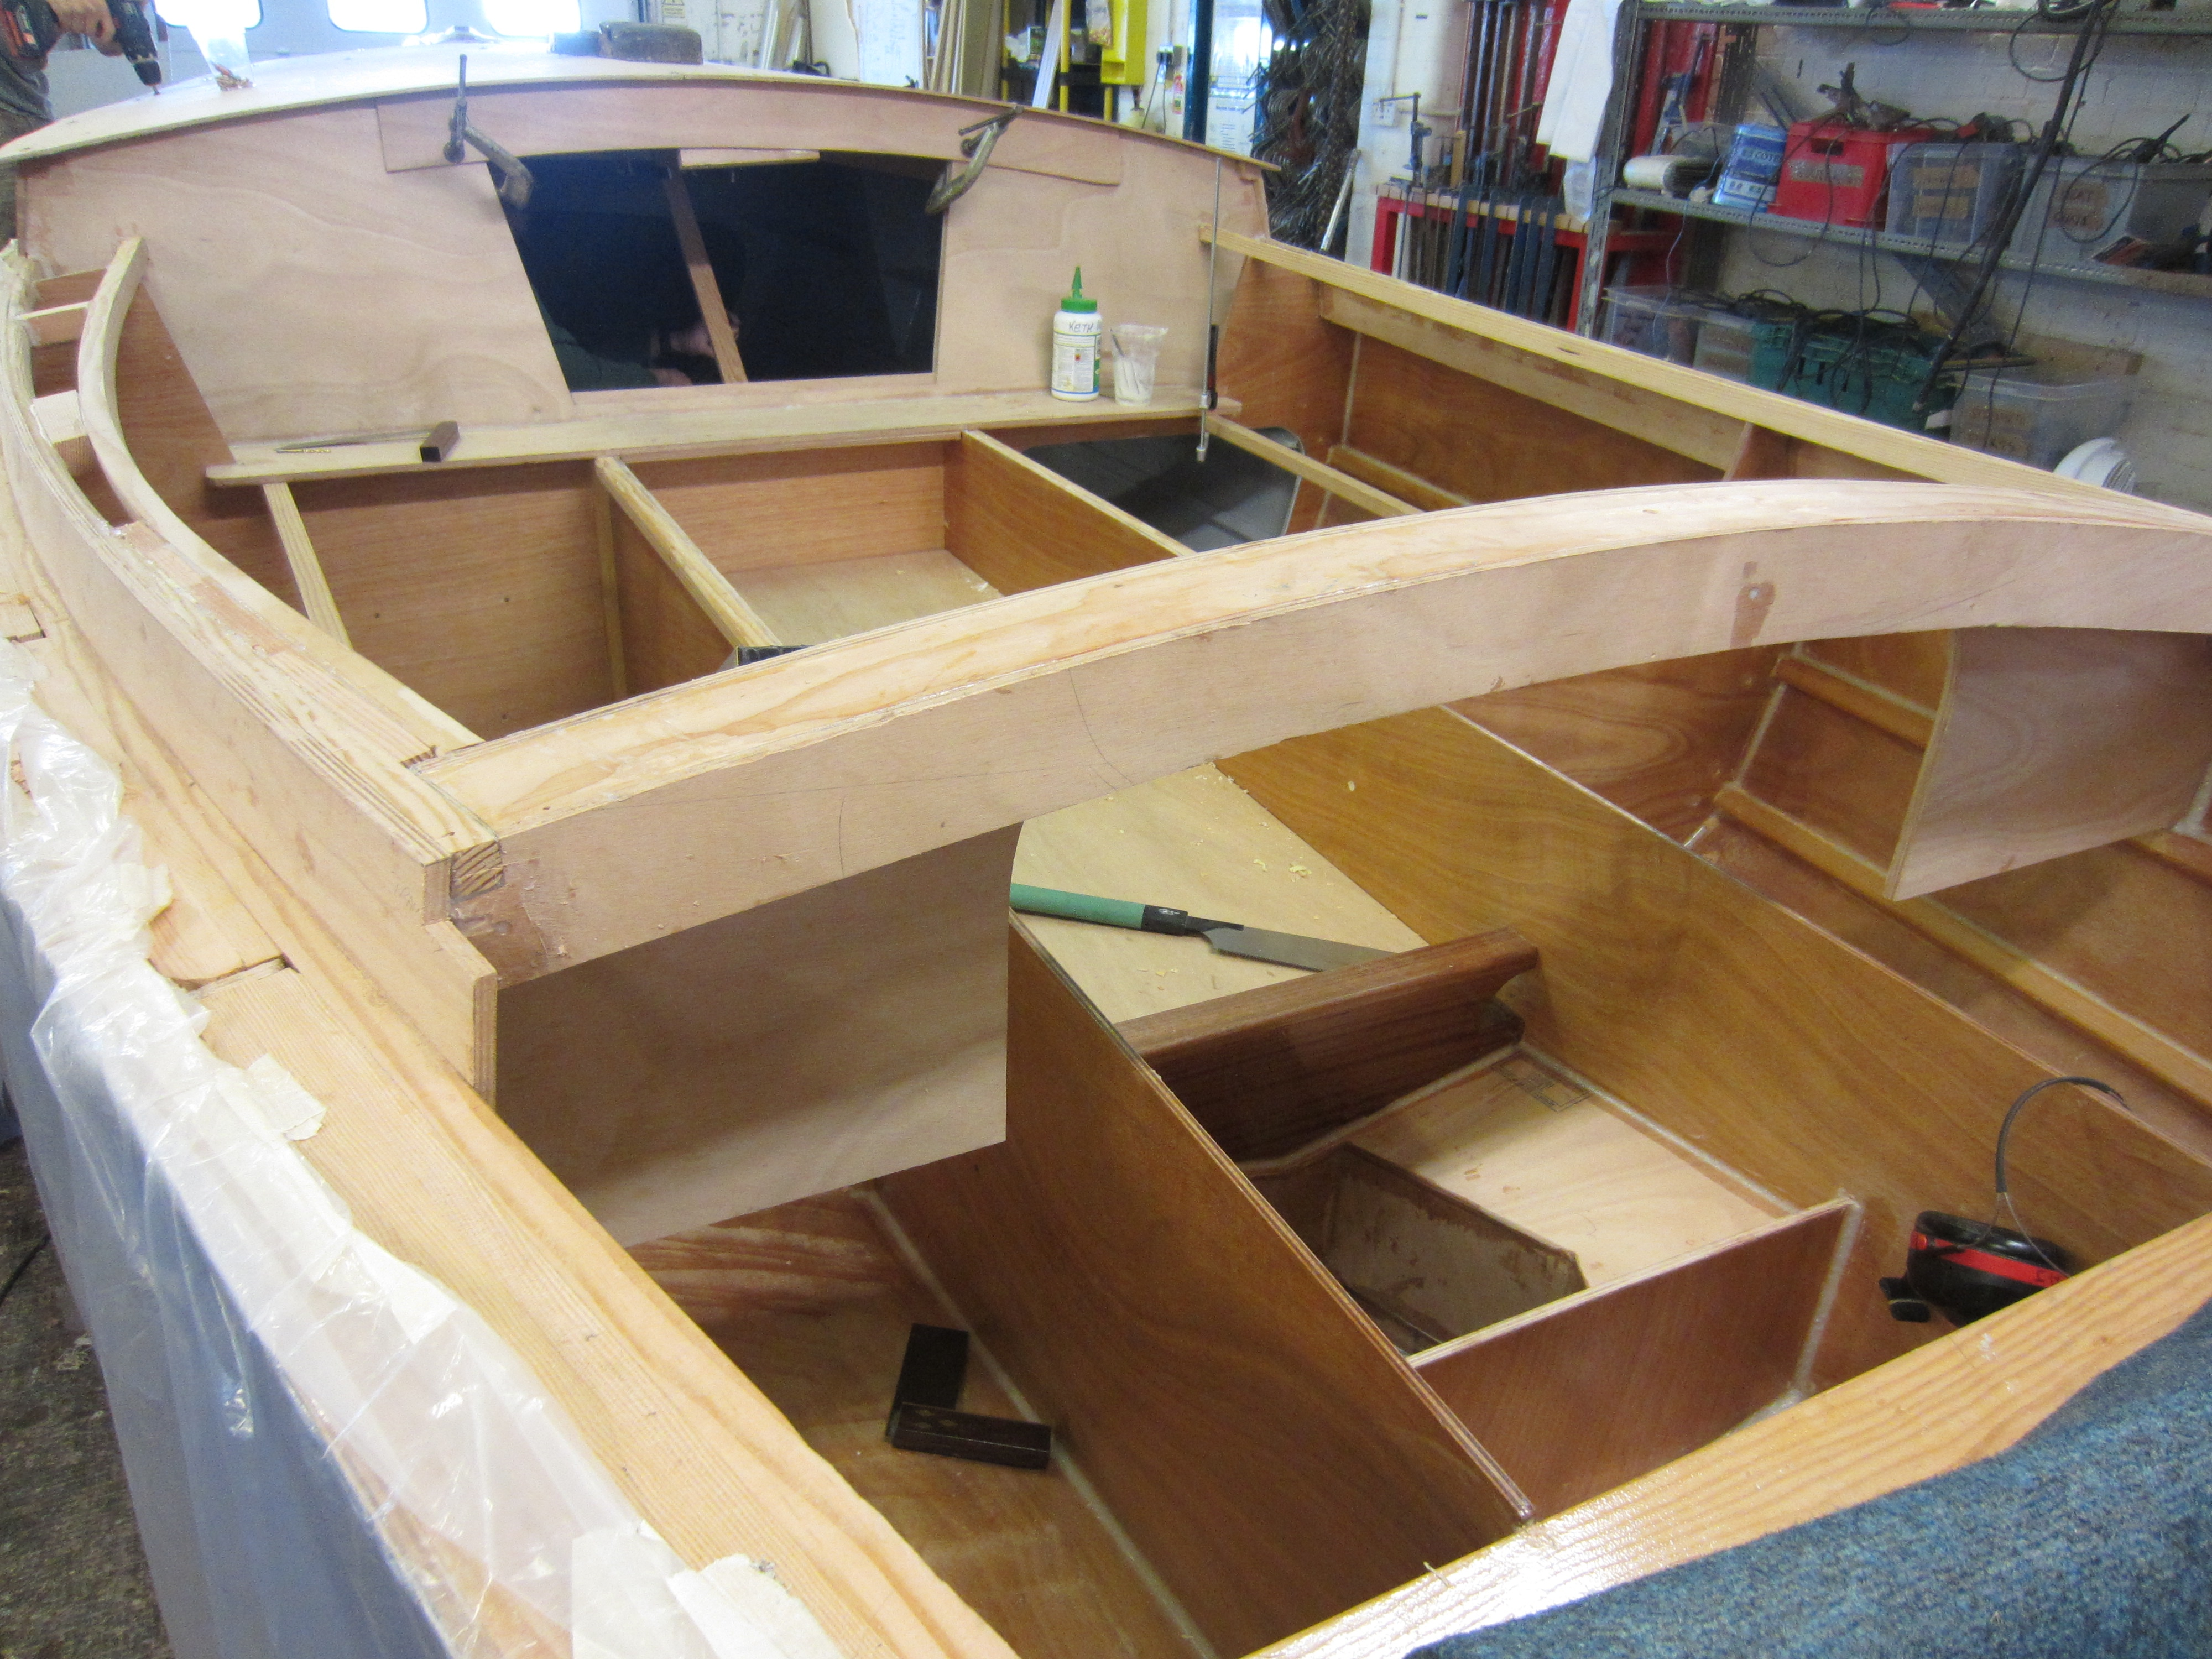 20' Golant Ketch - Keith McIlwain - Boat Building Academy